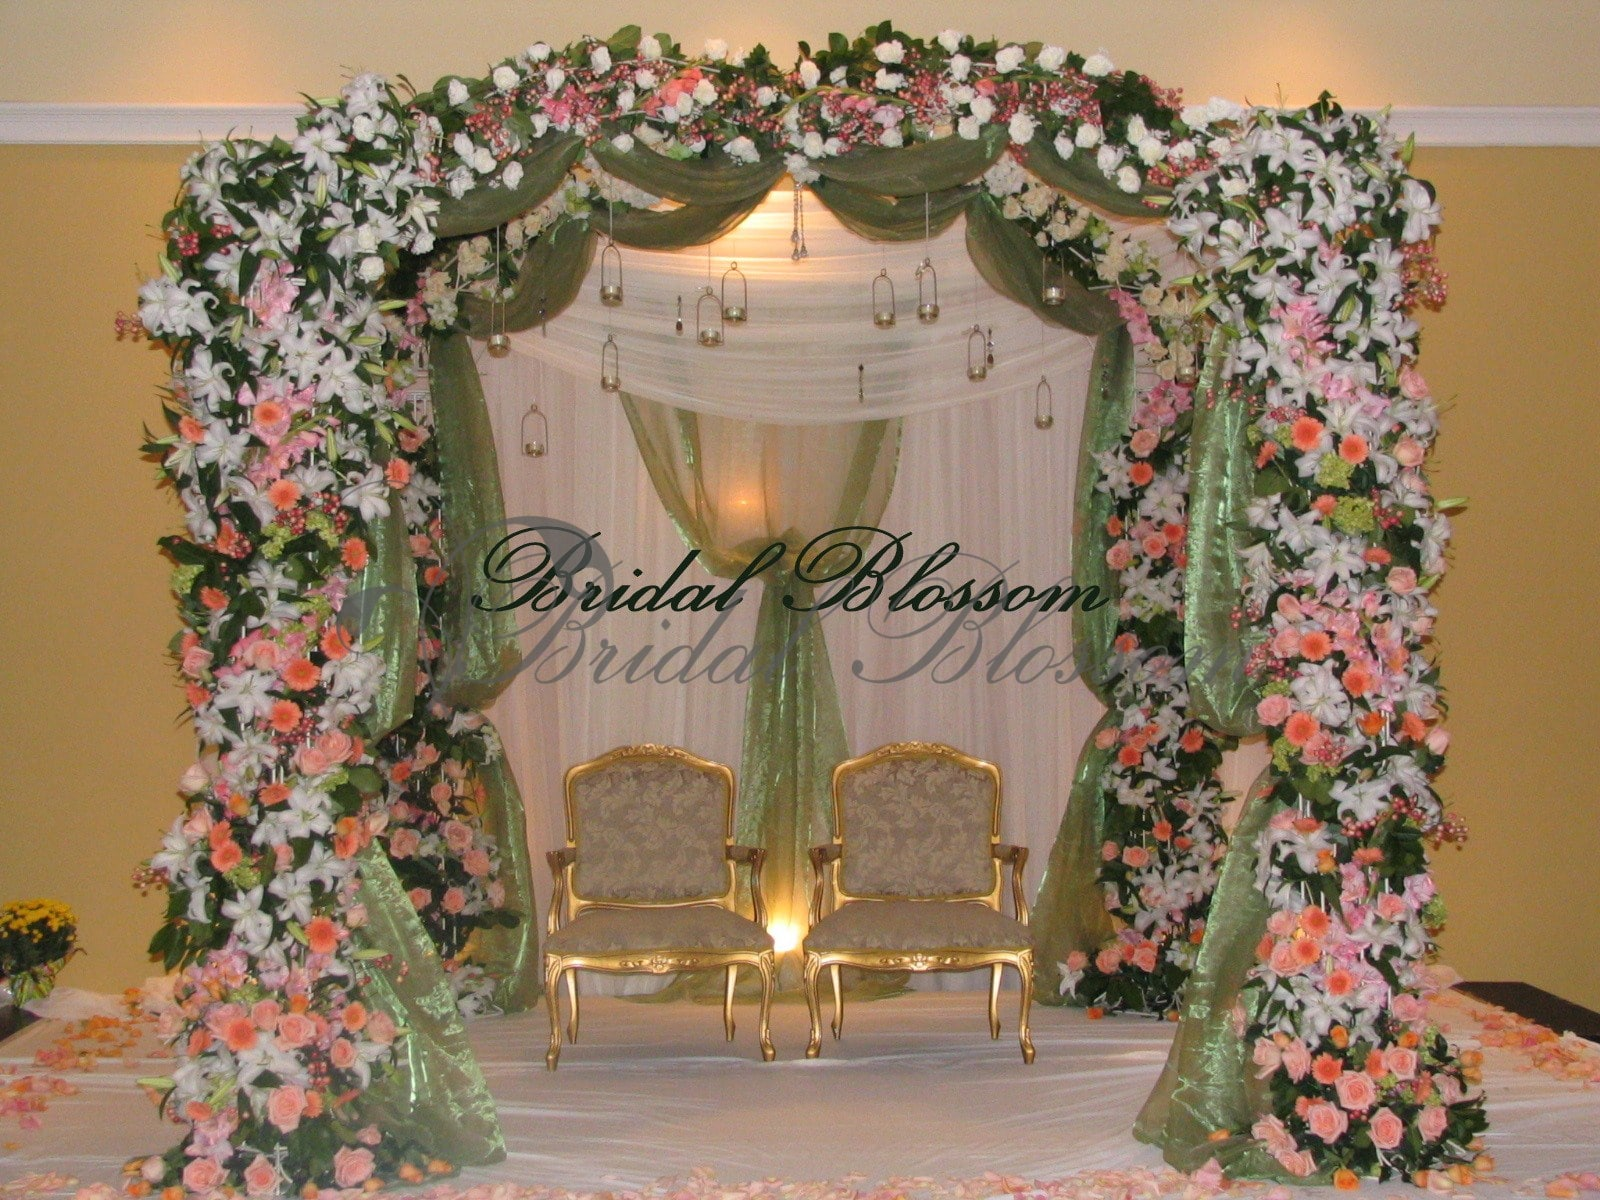 Bridal Blossom arch and backdrop